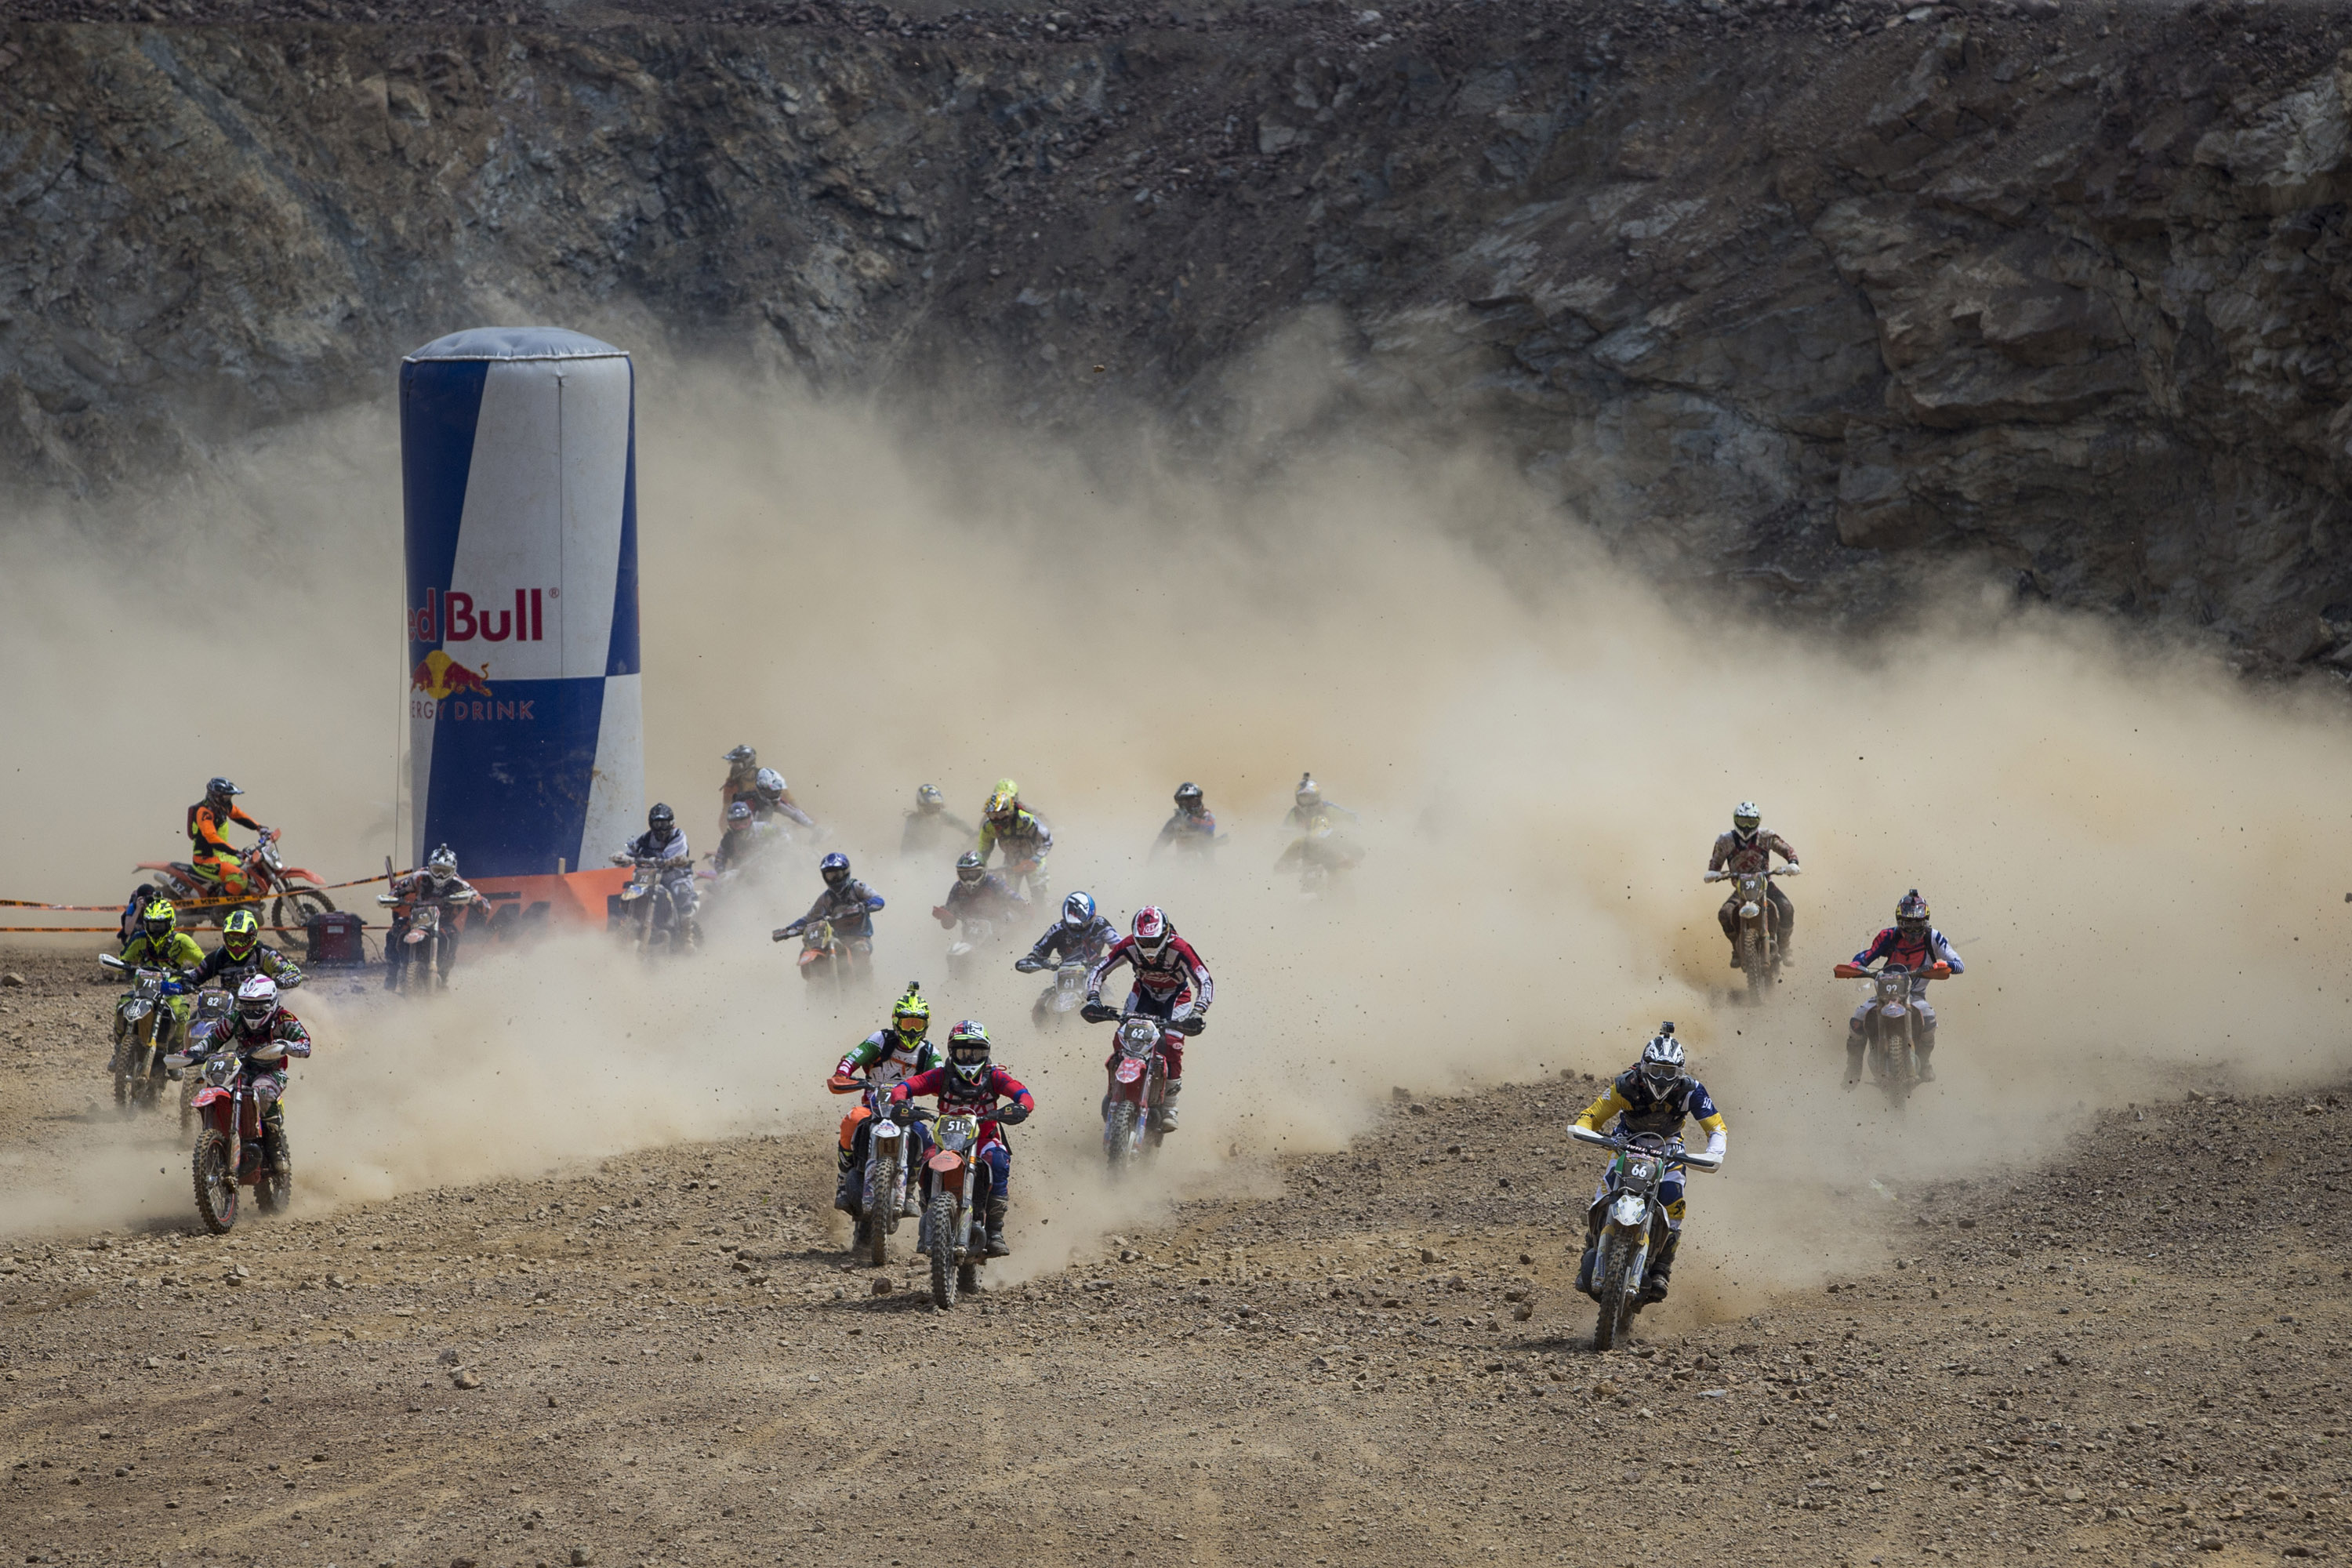 Competitors perform during the Red Bull Hare Scramble 2015 in Eisenerz, Austria on June 7, 2015